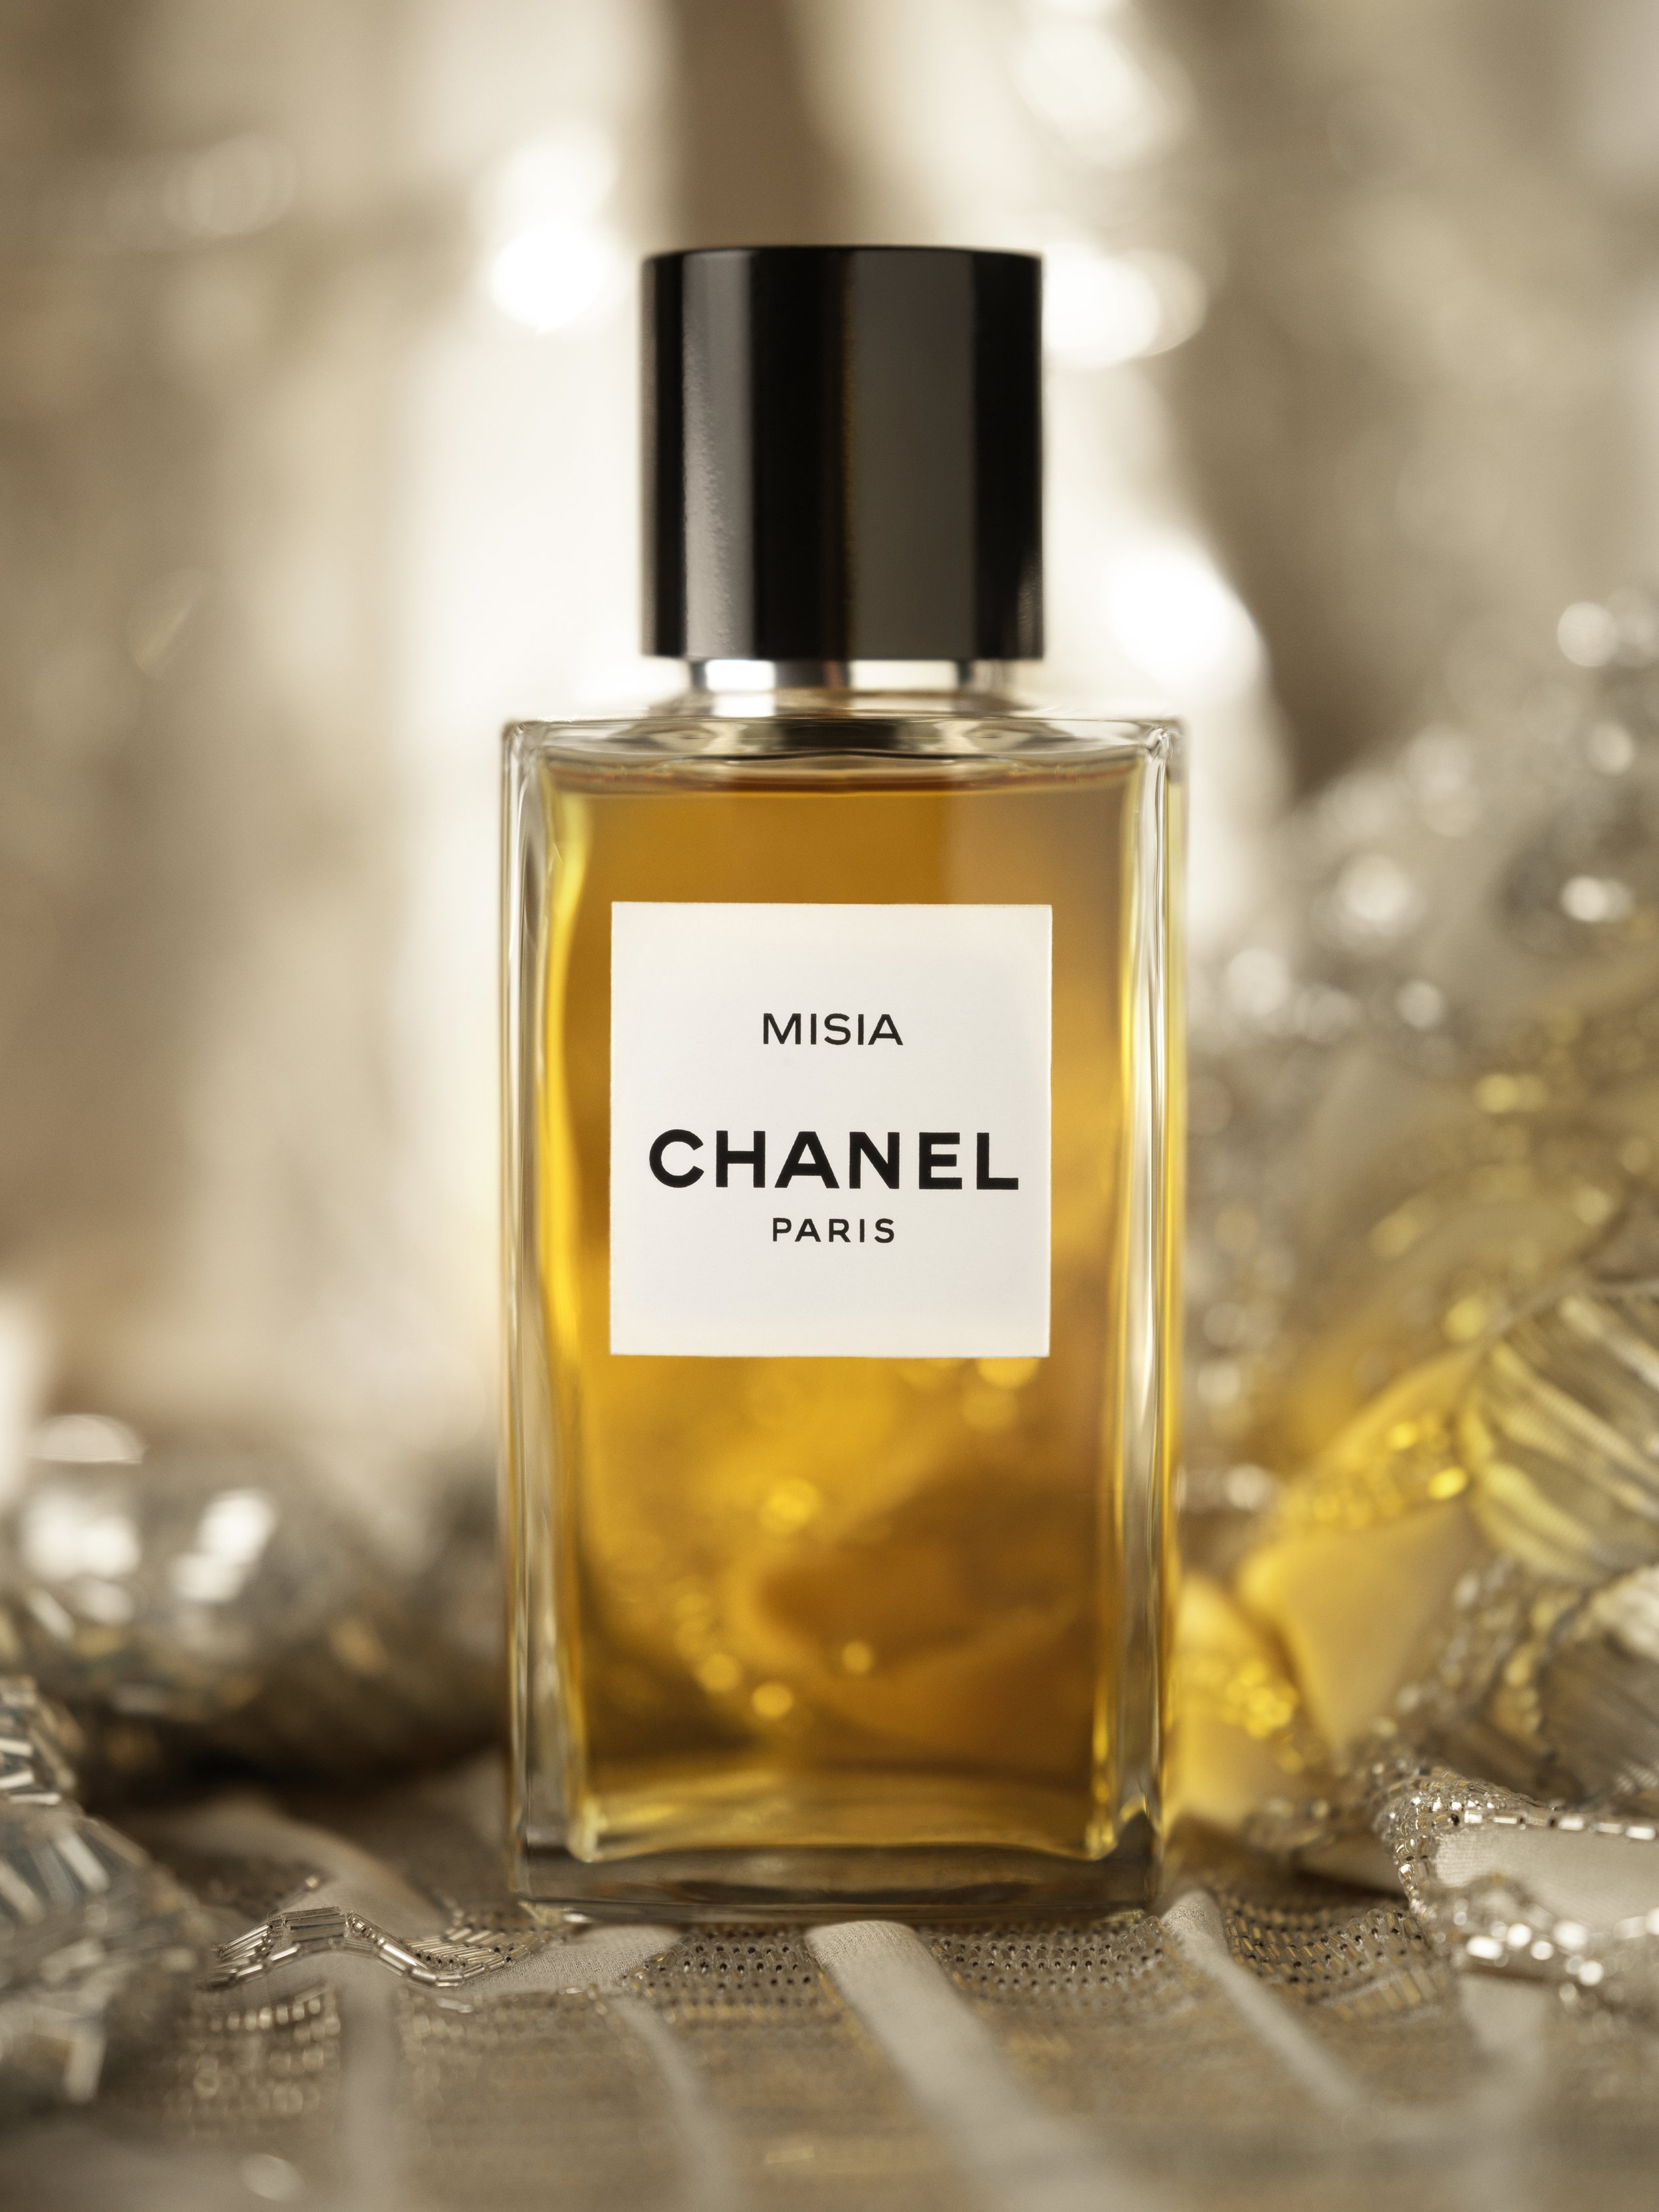 MISIA – A NEW FRAGRANCE BY CHANEL